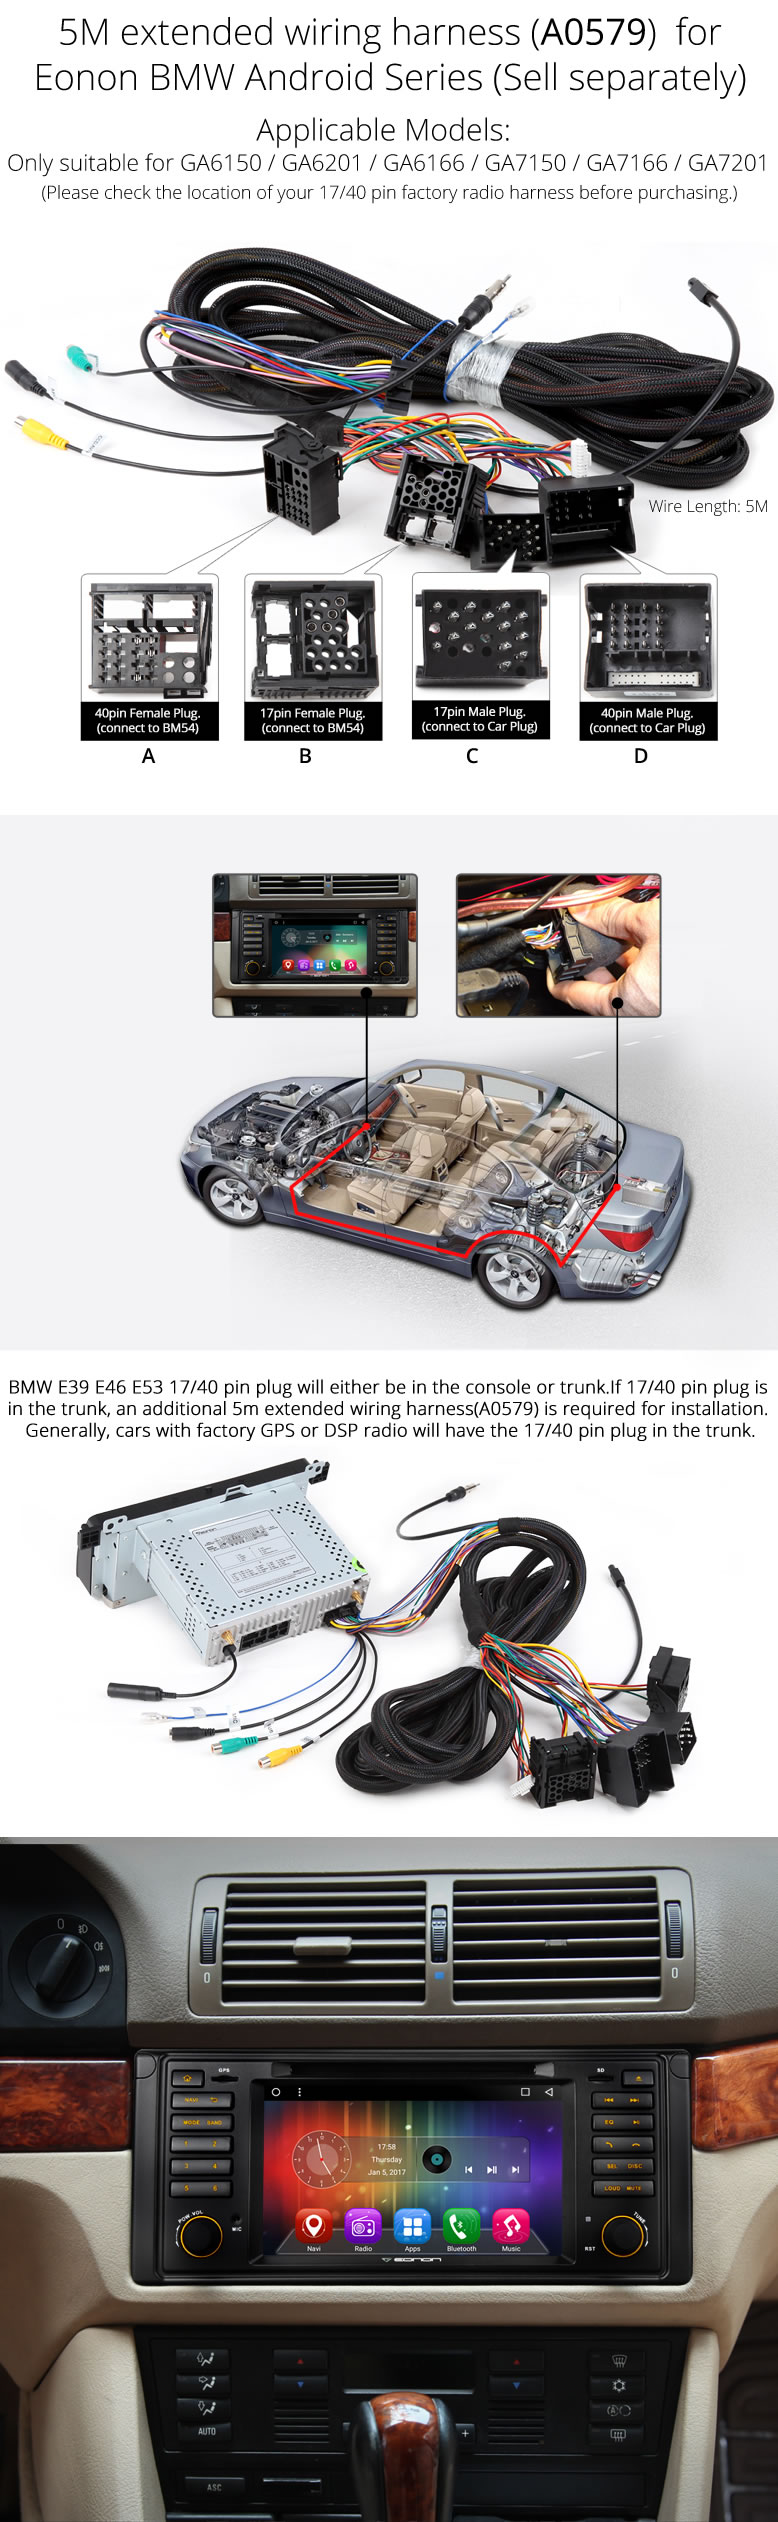 GA7201 06 android vehicle specific gps ga7201 Wiring Harness Diagram at aneh.co